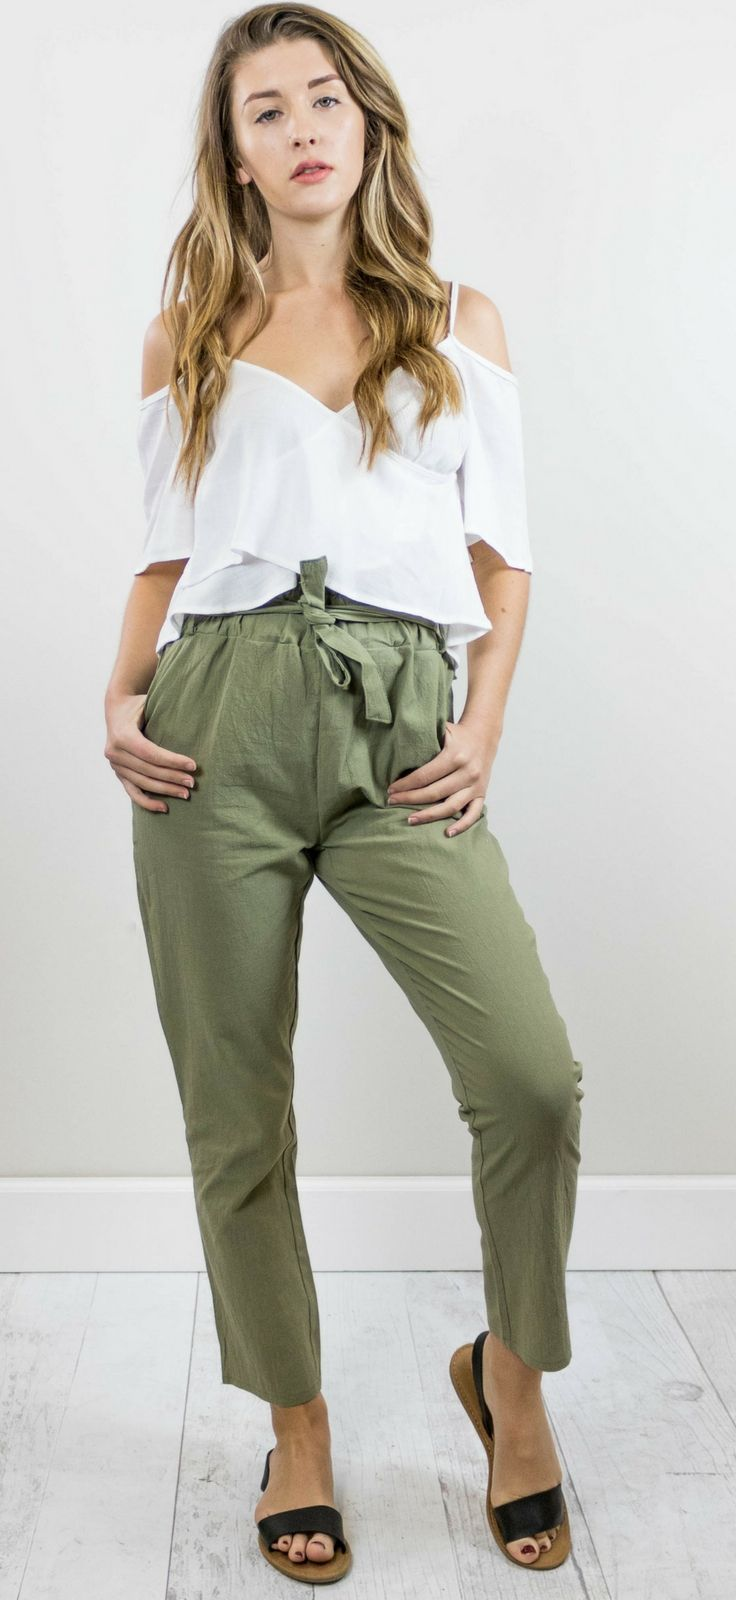 Best 25+ Chinos women ideas on Pinterest | Chino outfit women Camel pants and Beige pants outfit